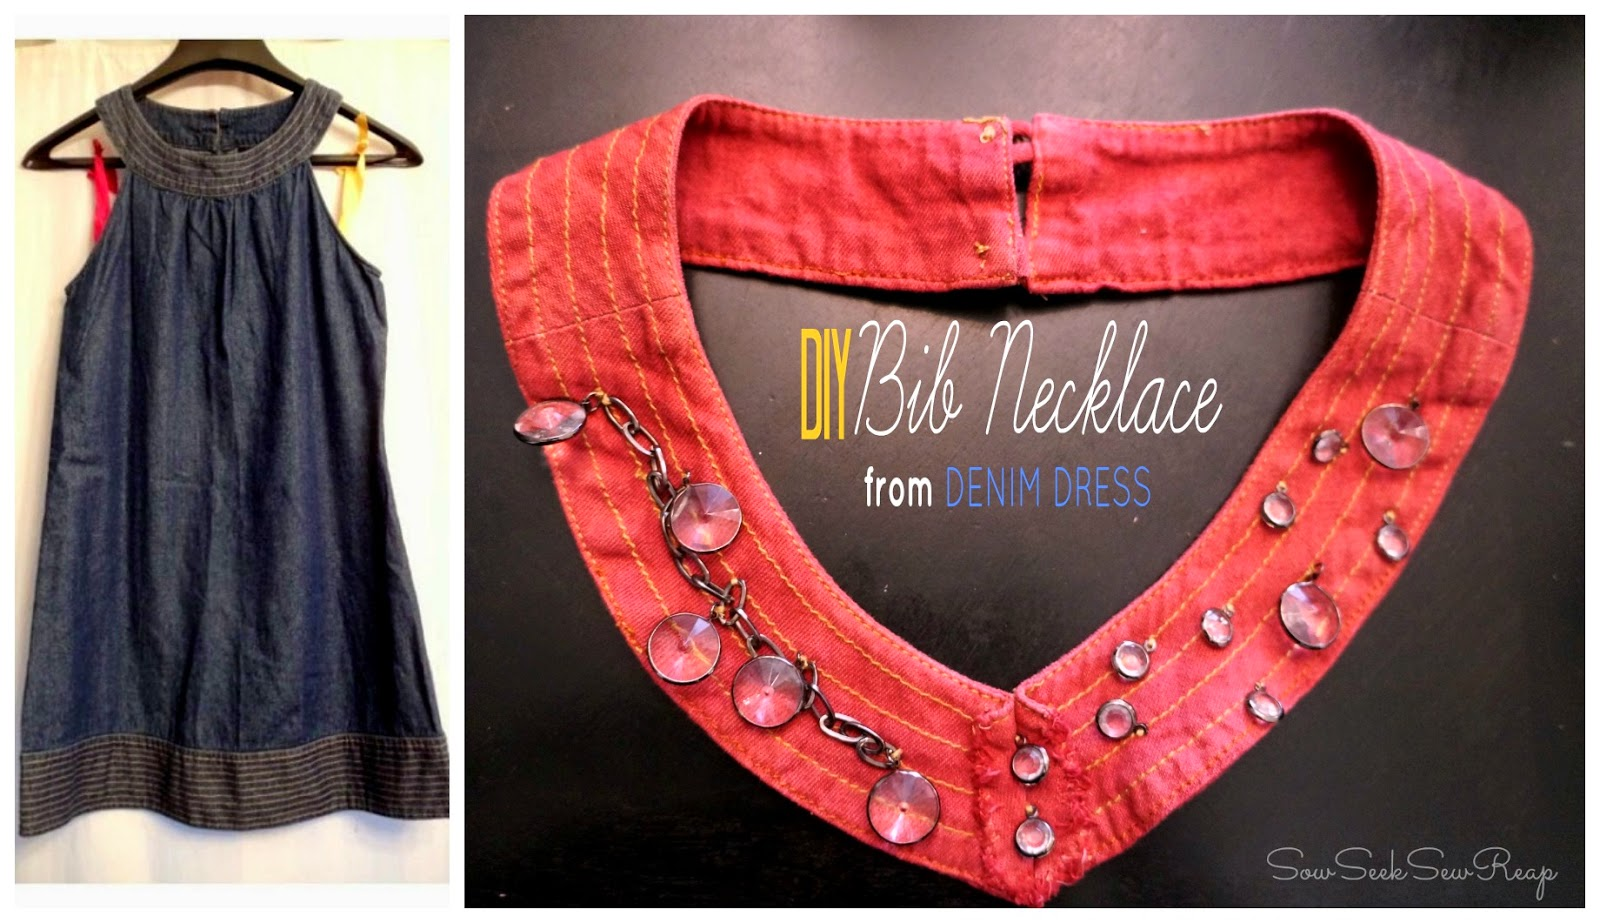 diy bib necklace, denim necklace, rit dye denim,